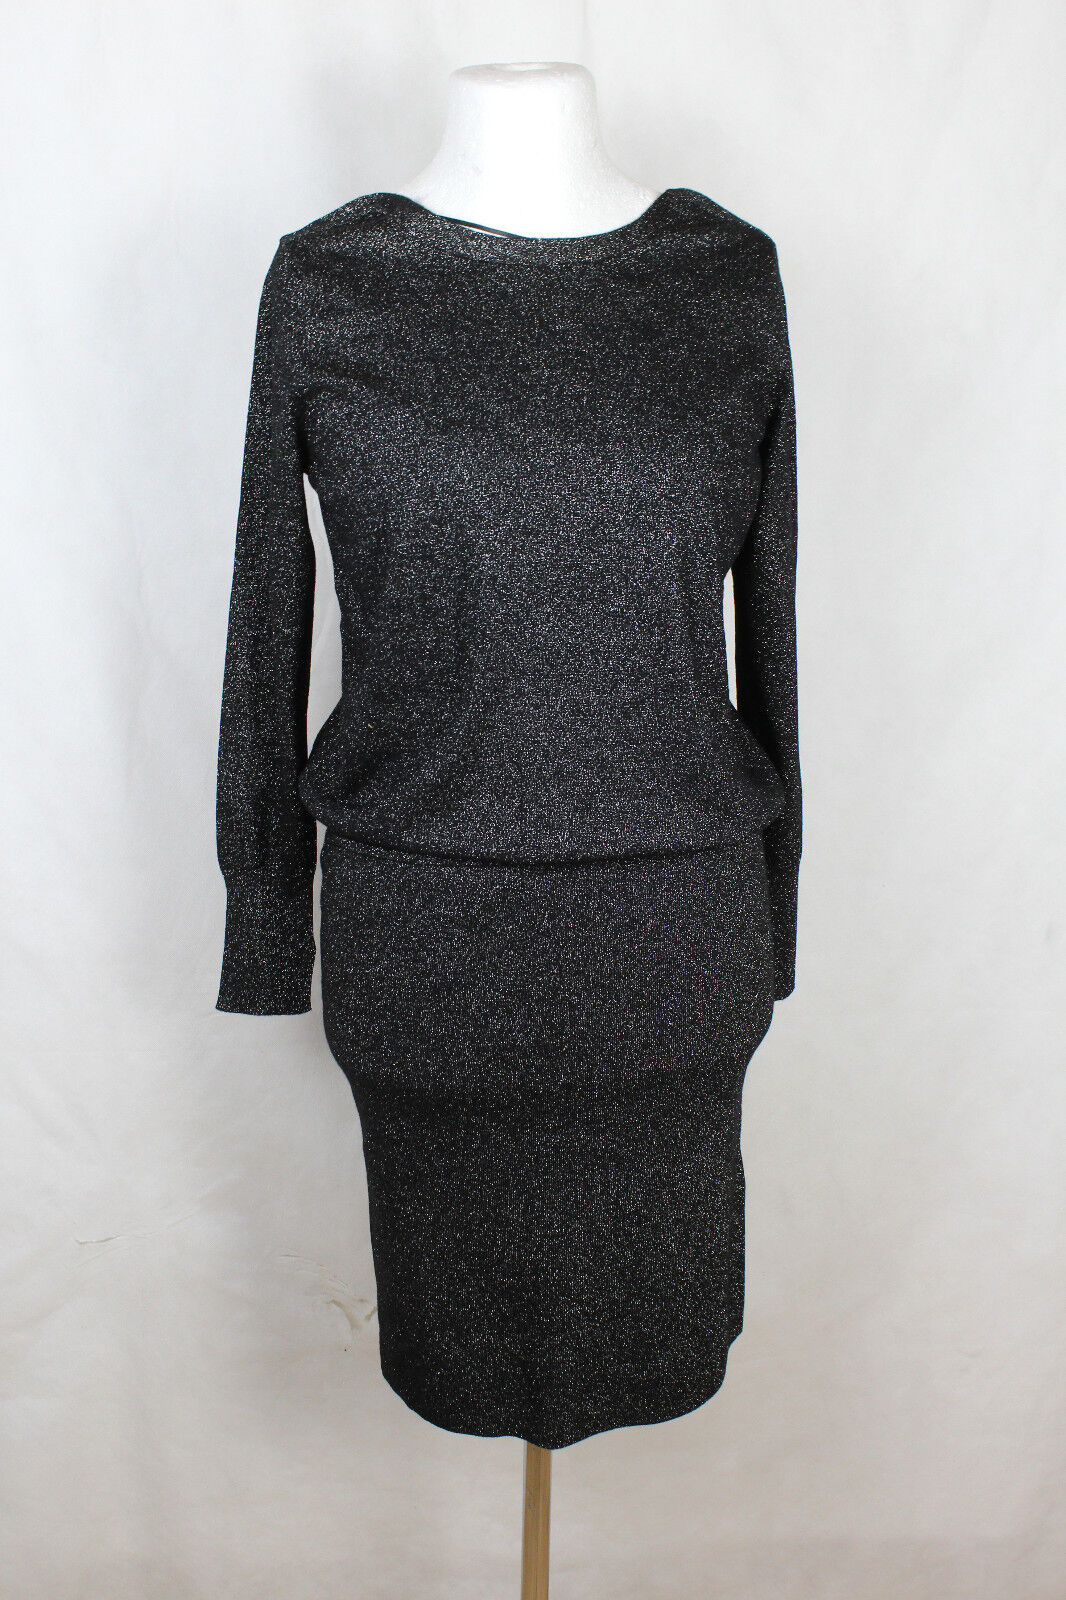 Talk About Kleid Strickkleid Damen Gr.38,neu,Etiketpreis